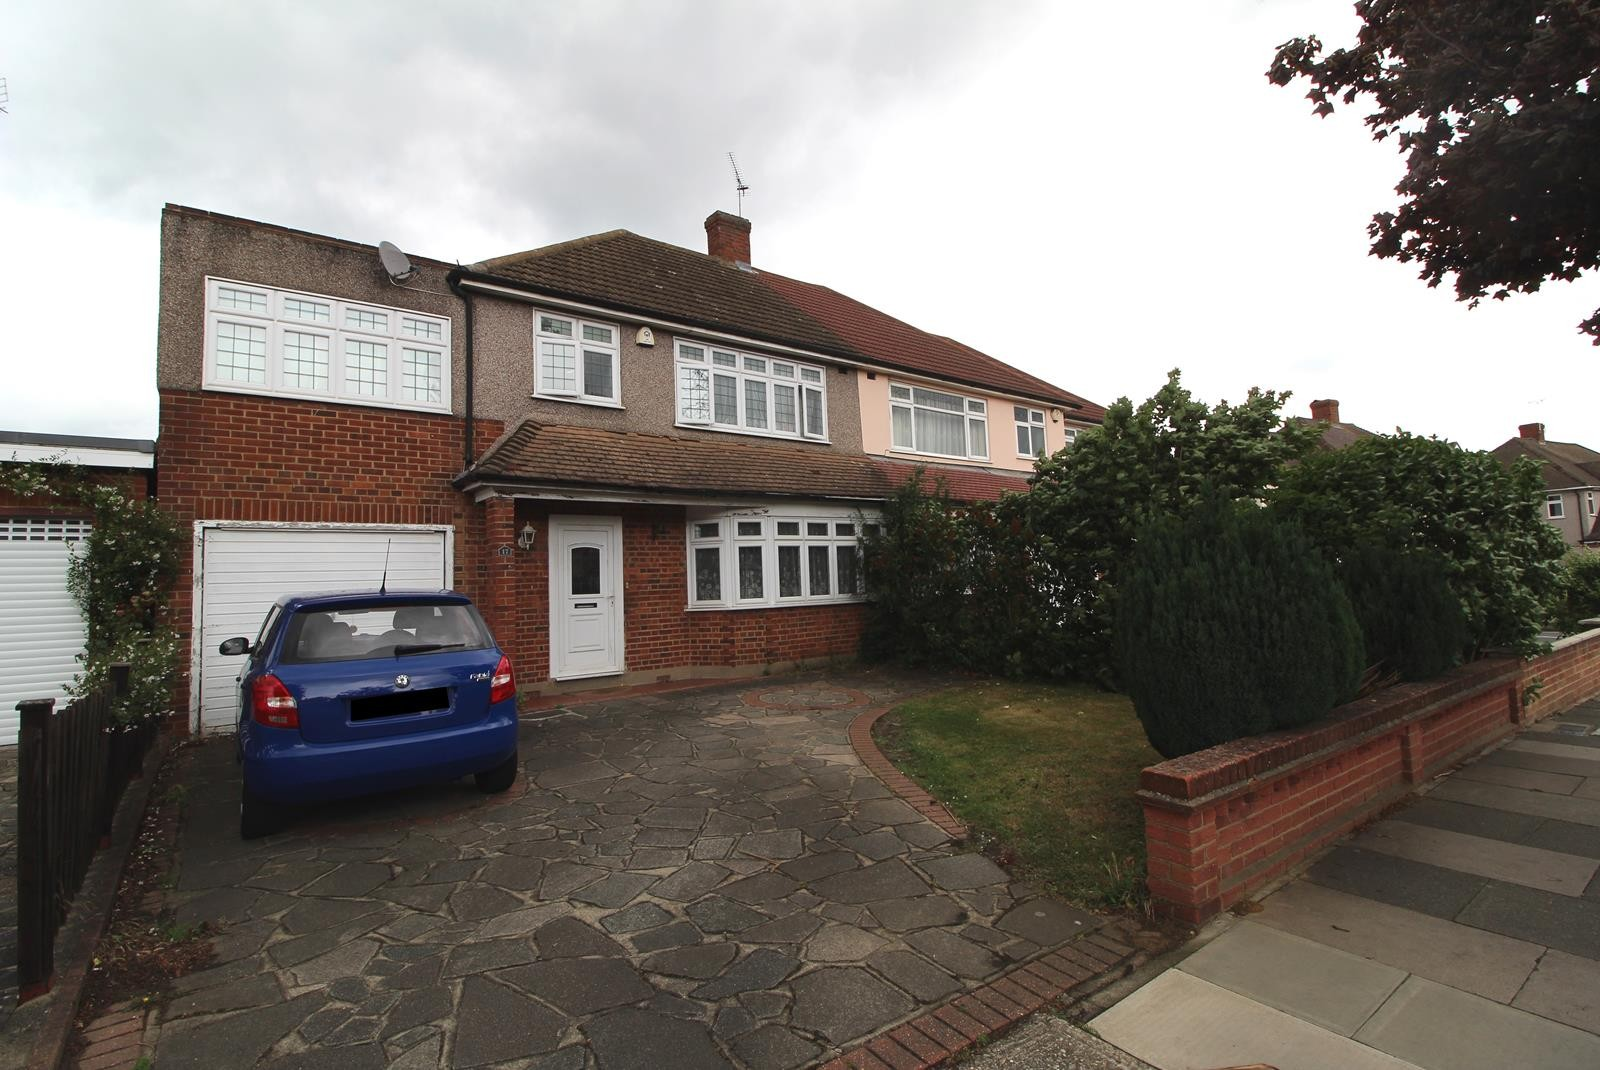 Avon Road, Upminster, Essex, RM14